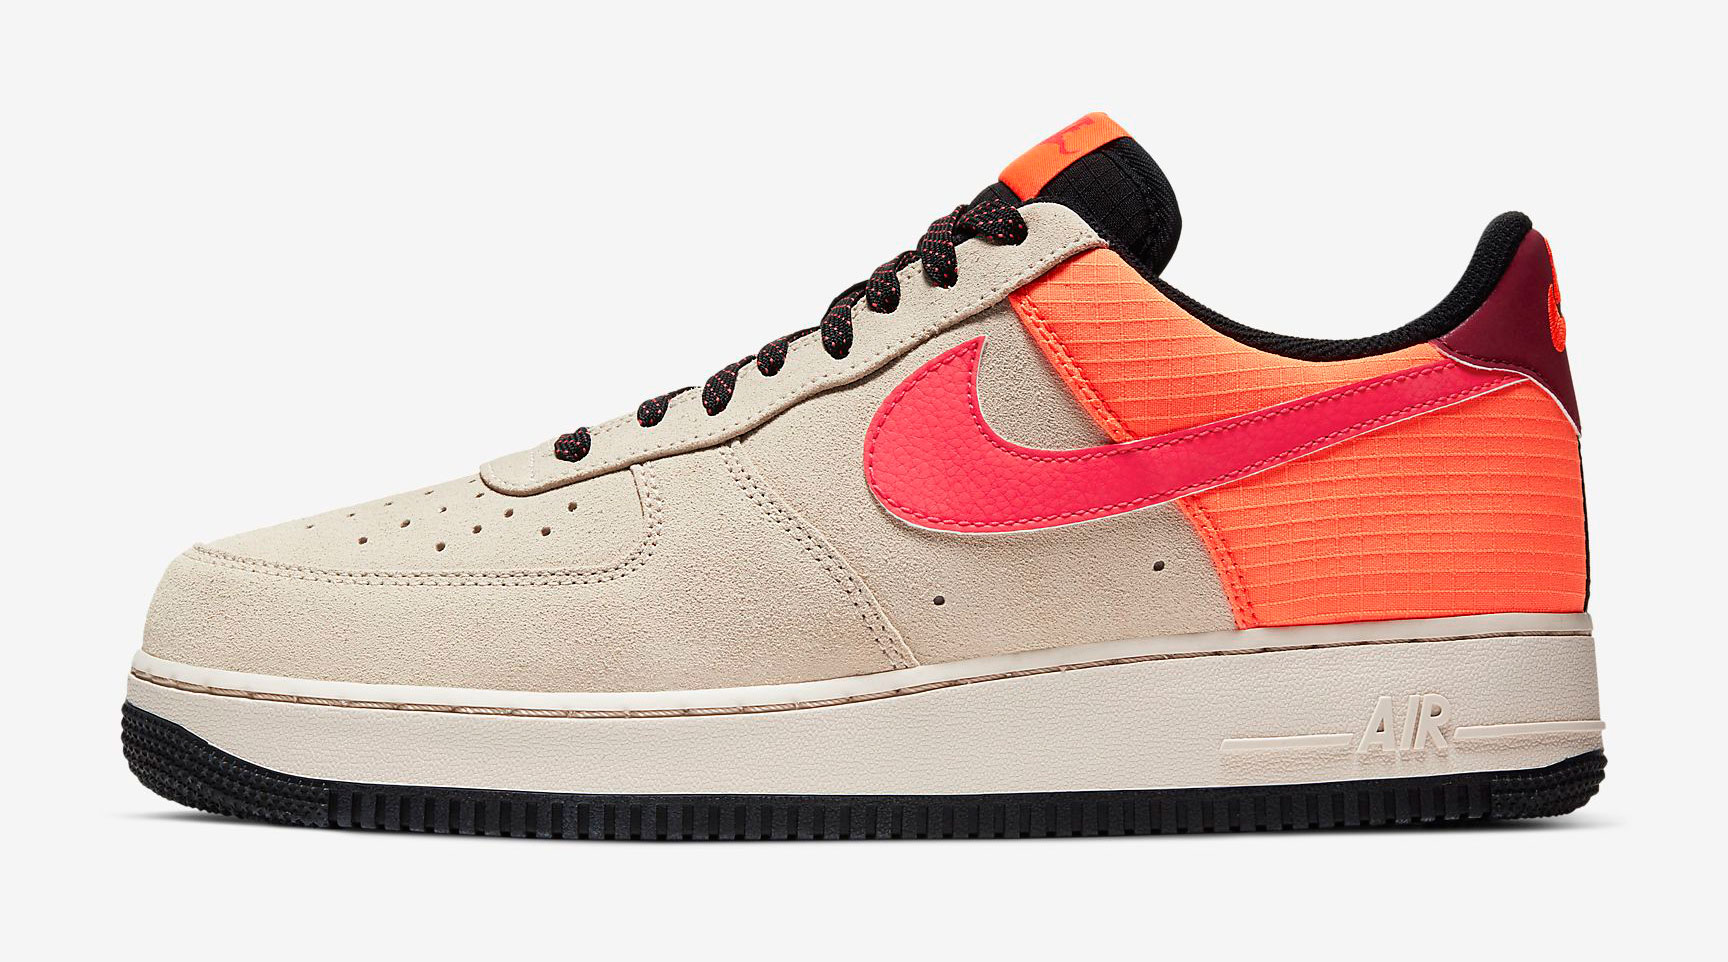 nike-air-force-1-hike-man-light-orewood-brown-crimson-release-date